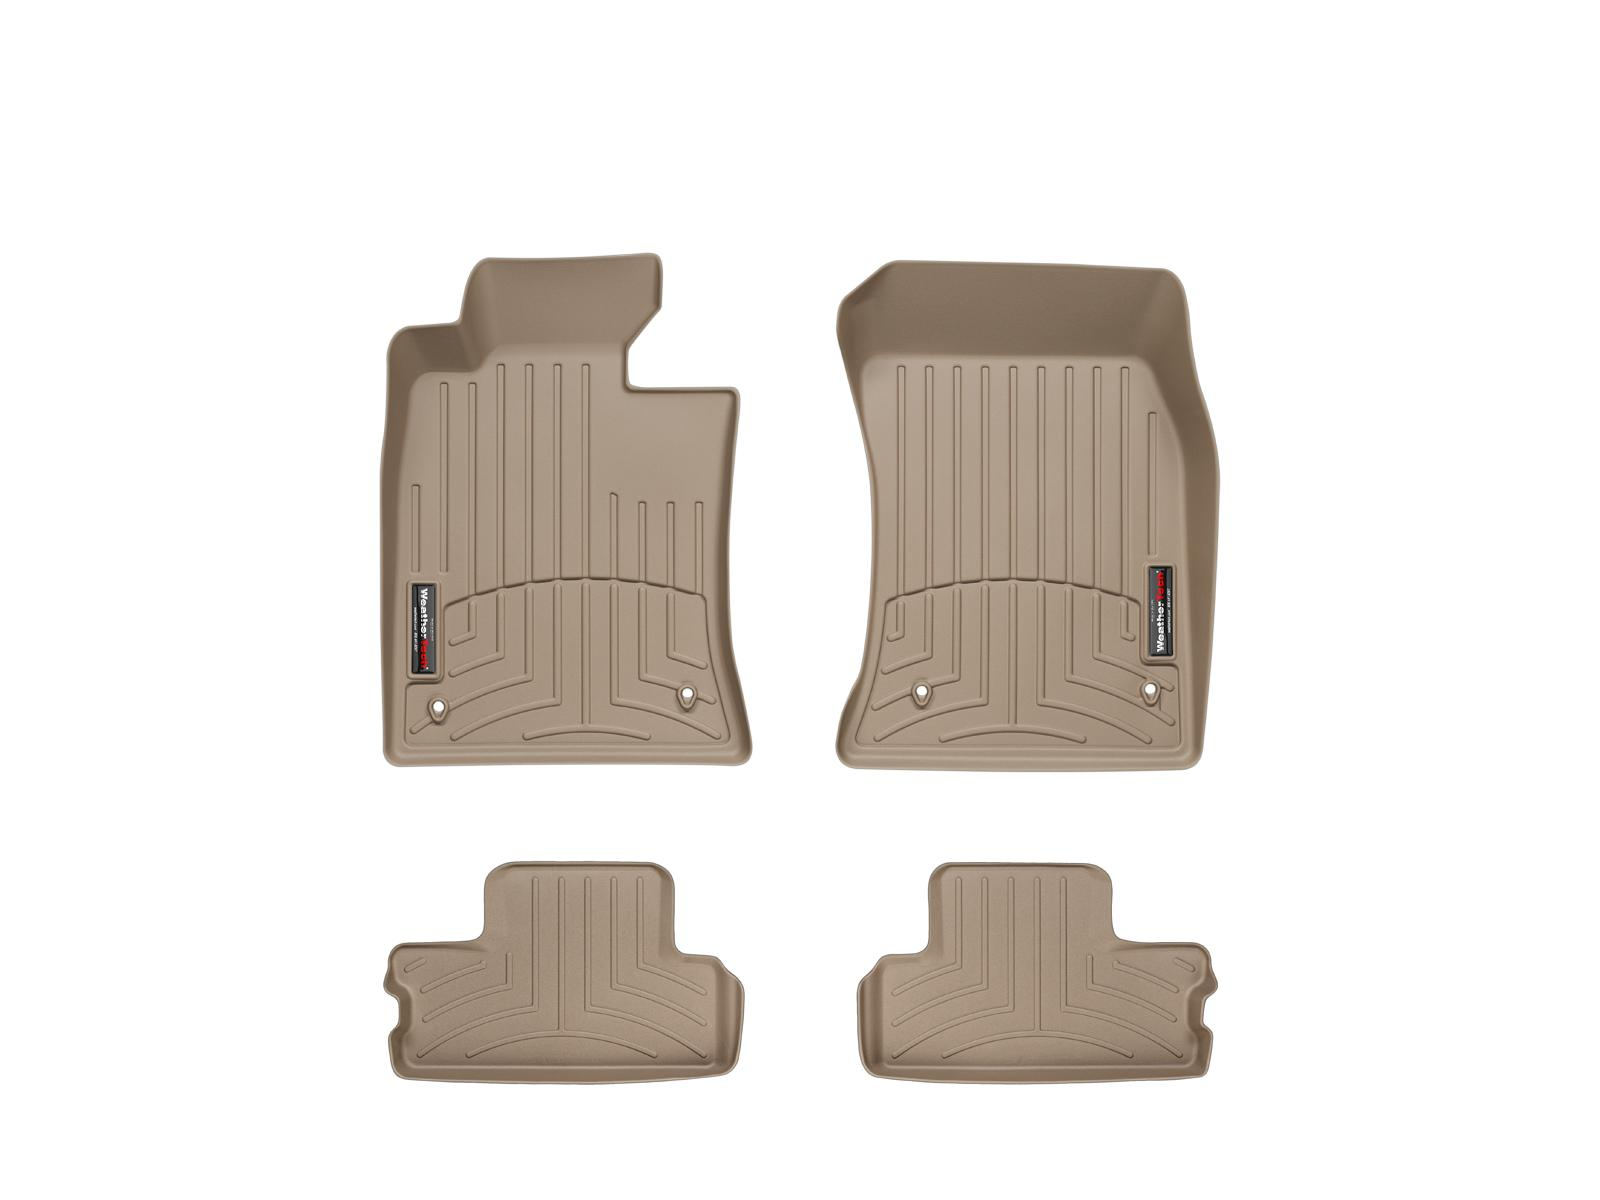 Tappeti gomma Weathertech bordo alto MINI Coupe 12>15 Marrone A2707